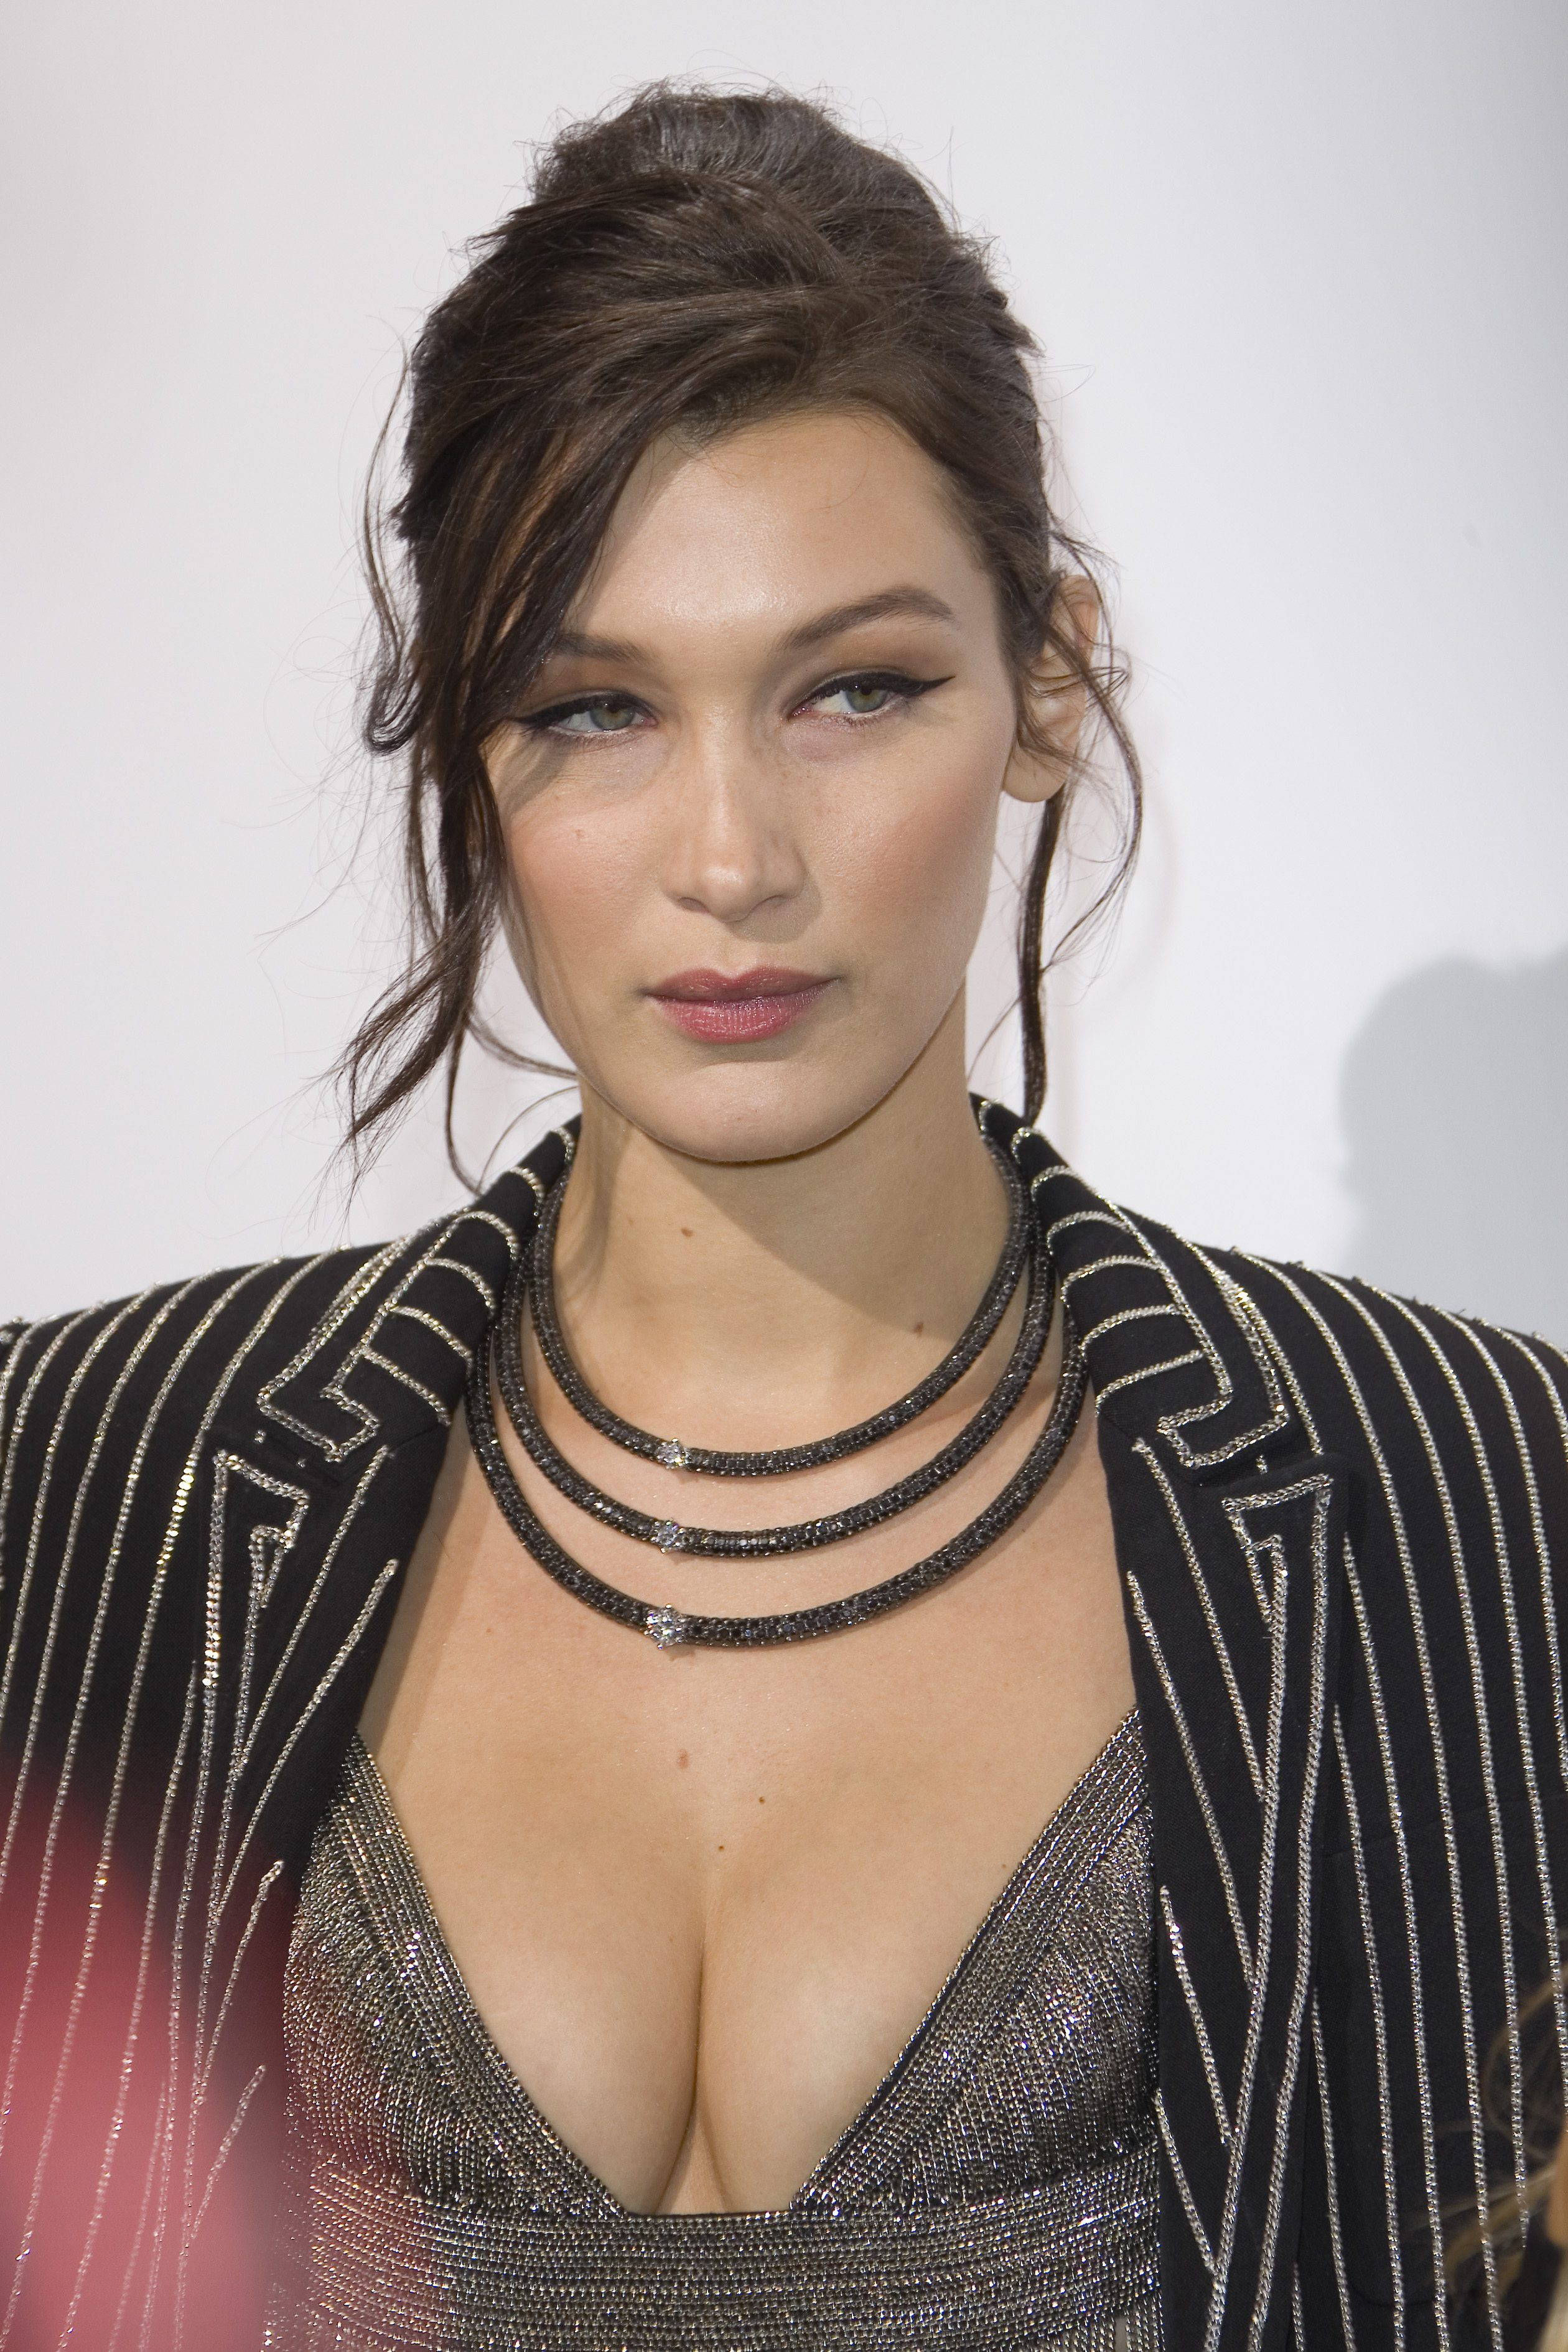 Bella Hadid's Messy Updo With Side Bangs